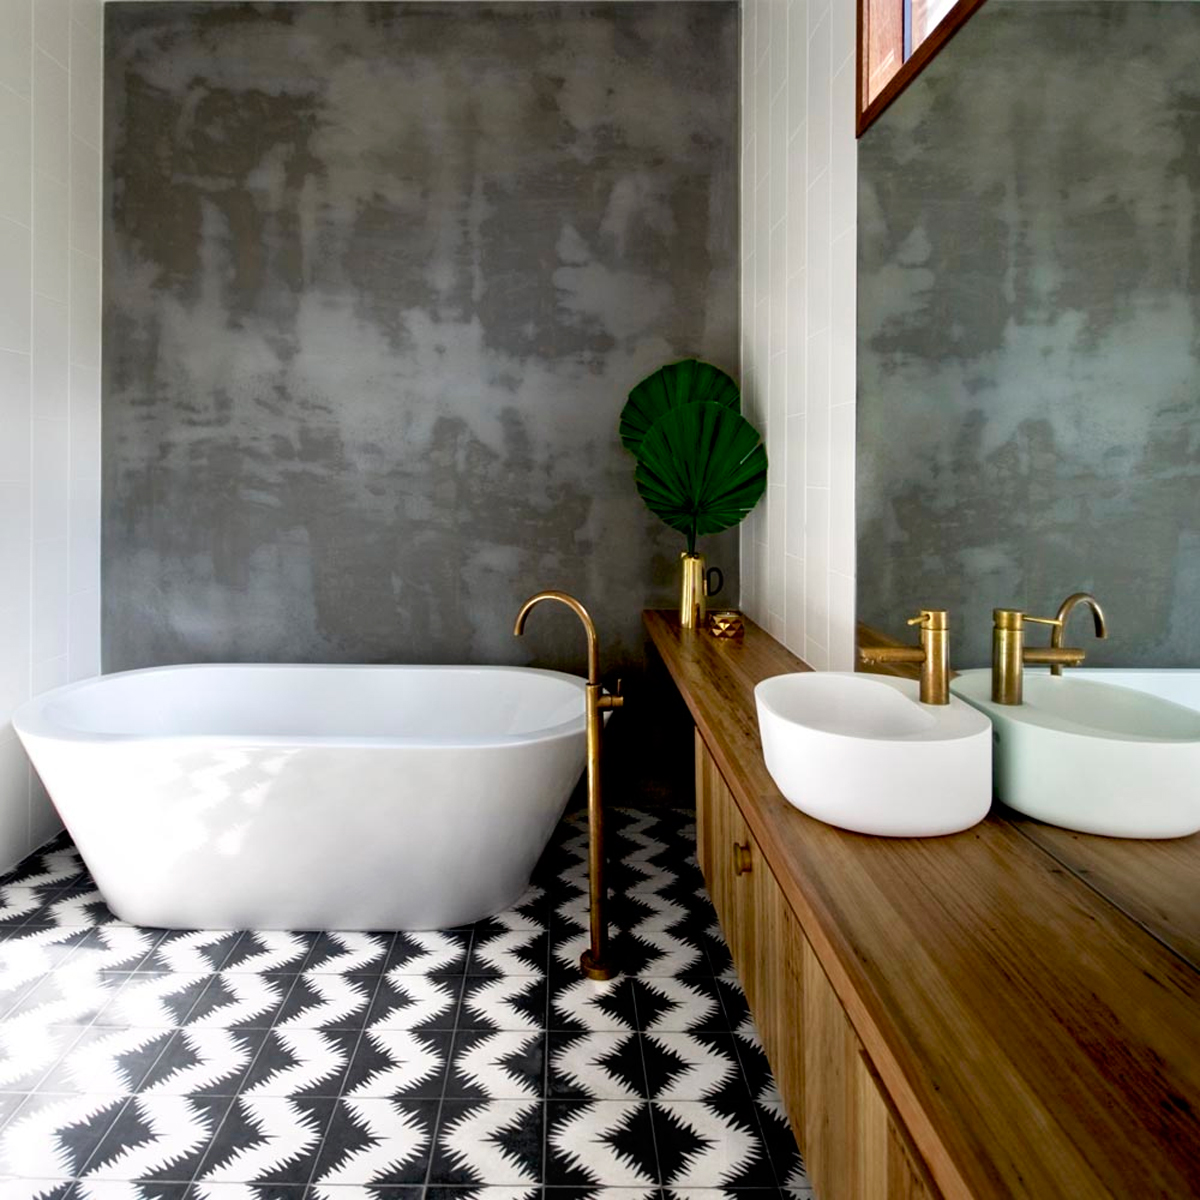 Bloesem Living | Link Love: Bathroom Goals